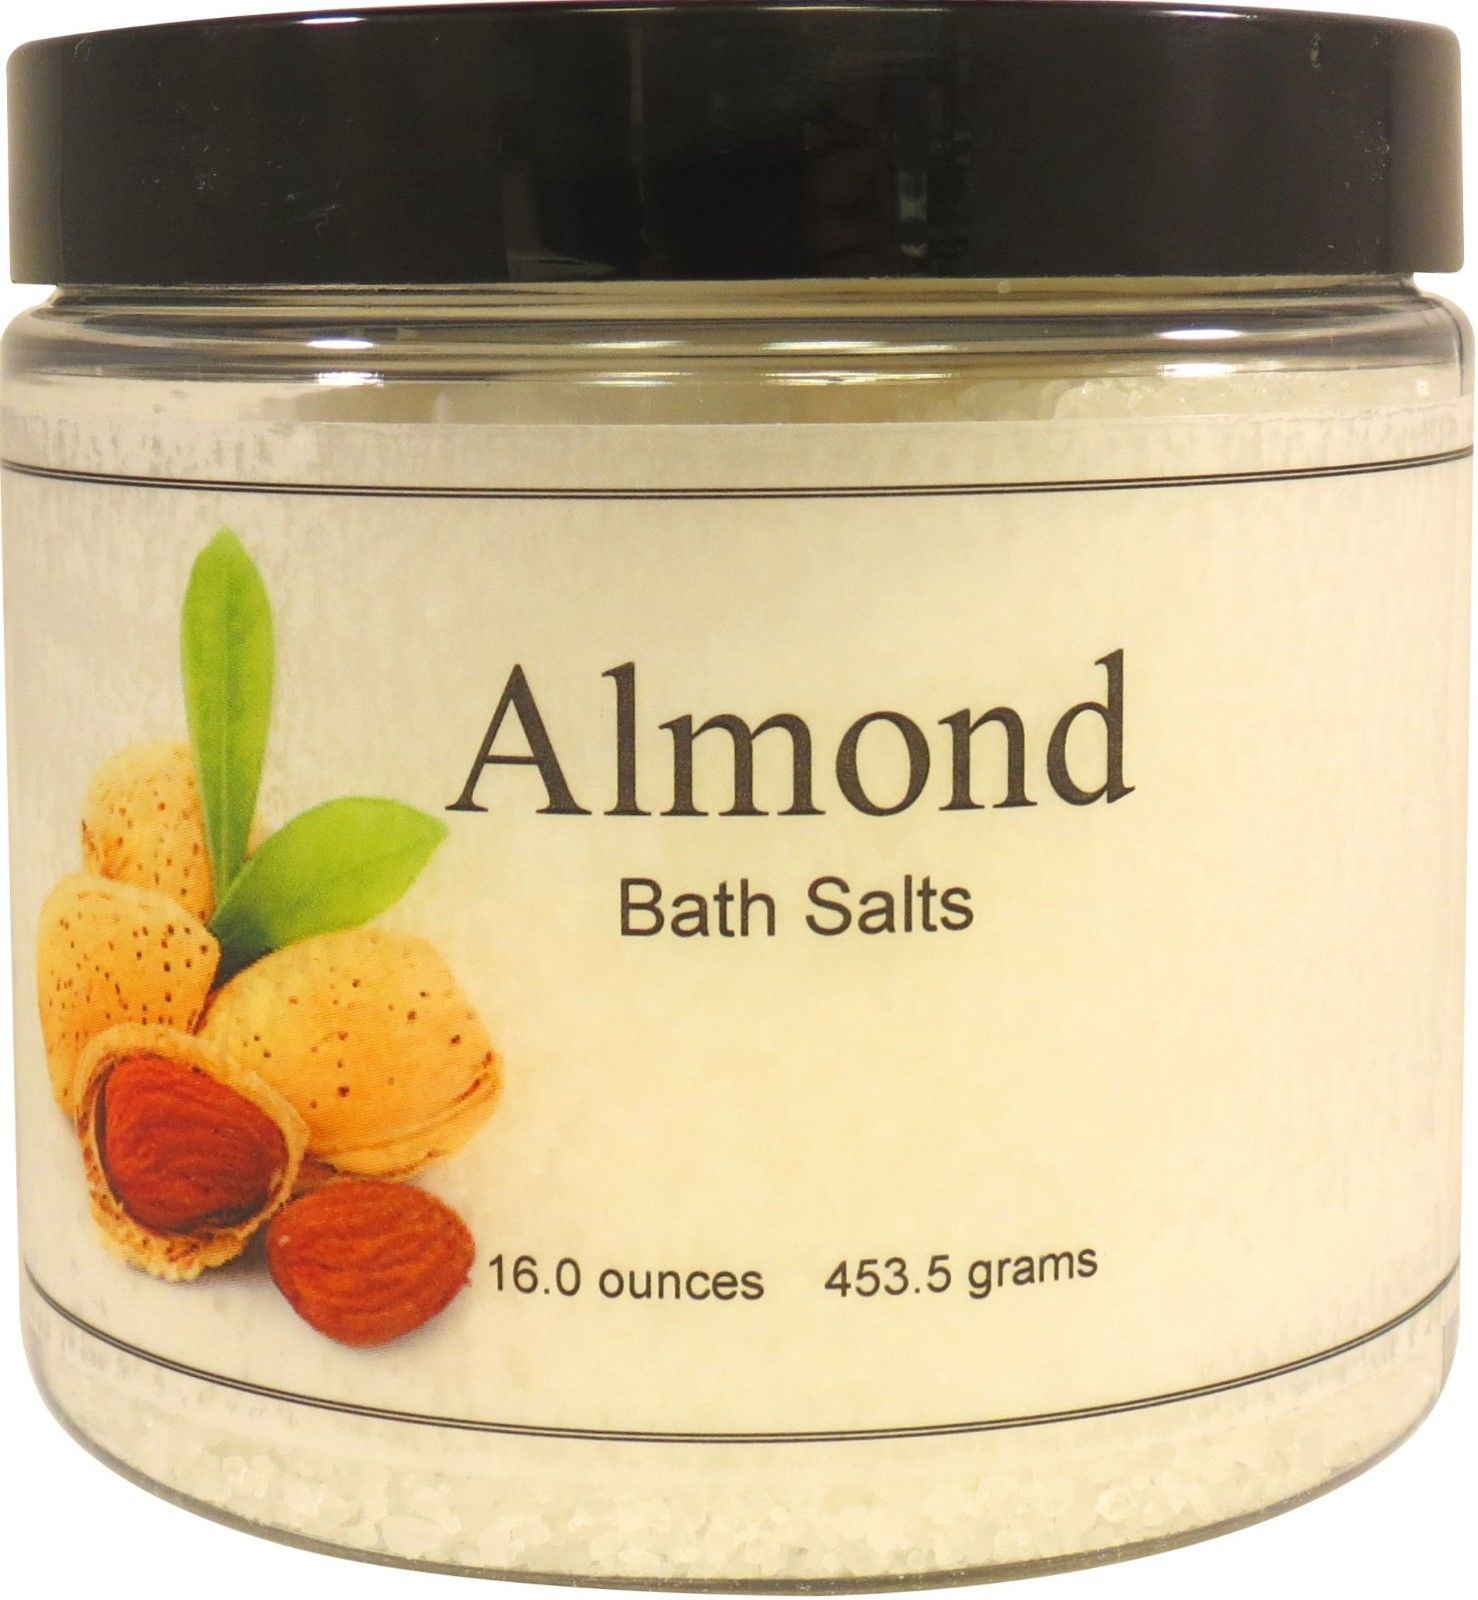 Almond Bath Salts